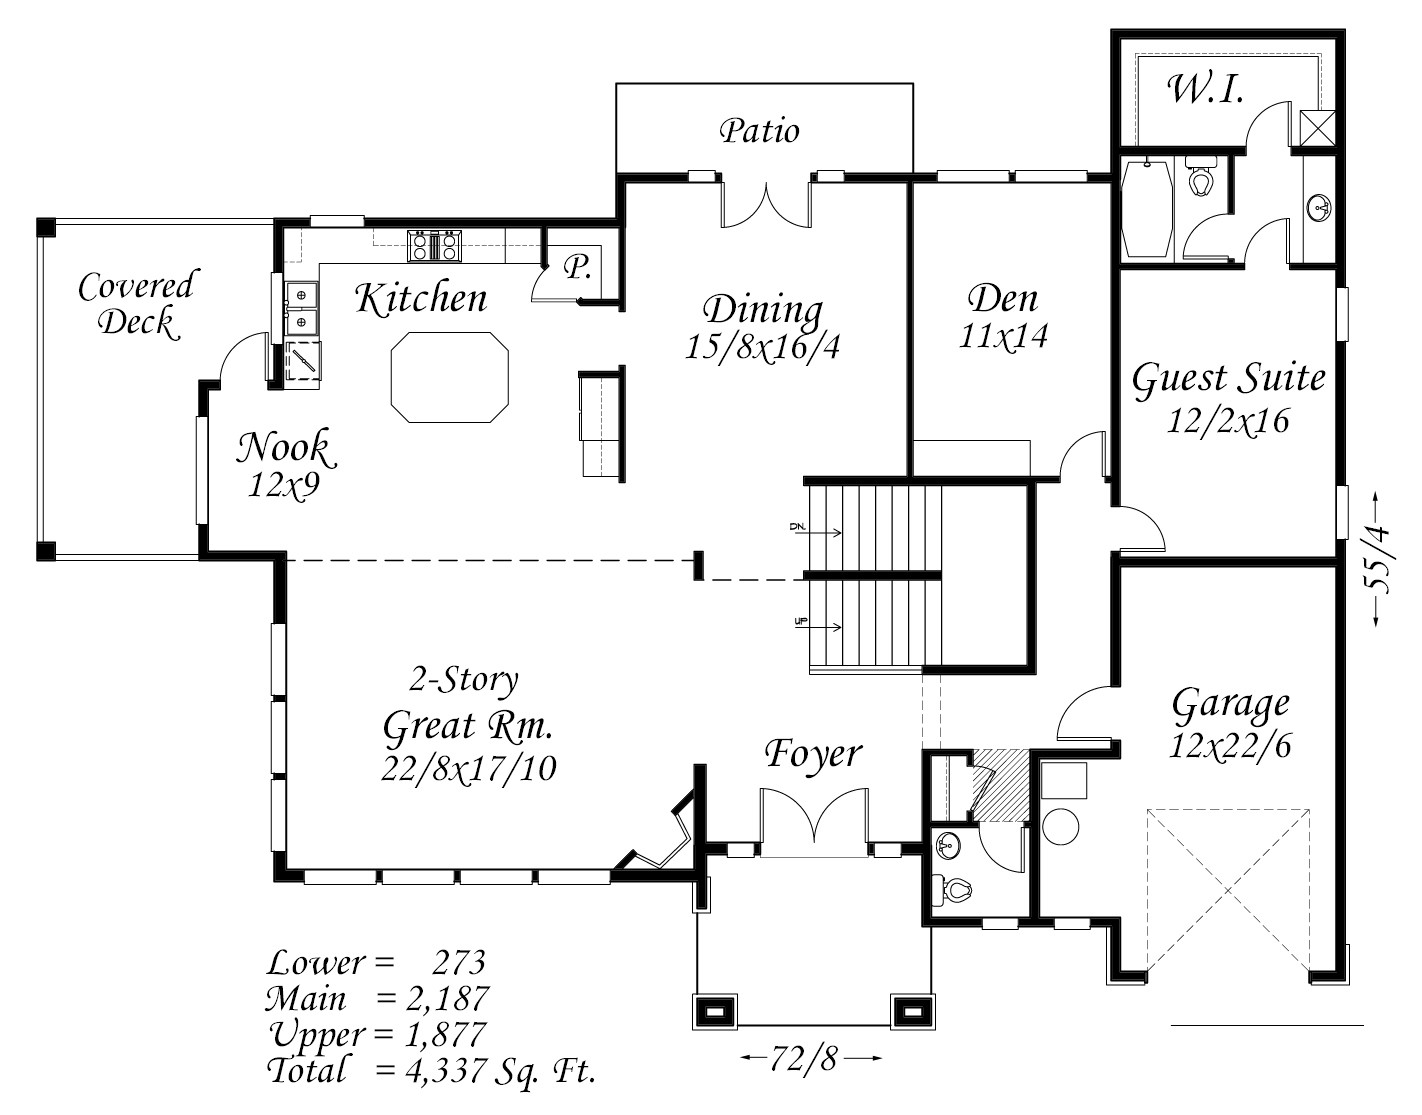 Beautiful life house plan old world european style house for Old world european house plans